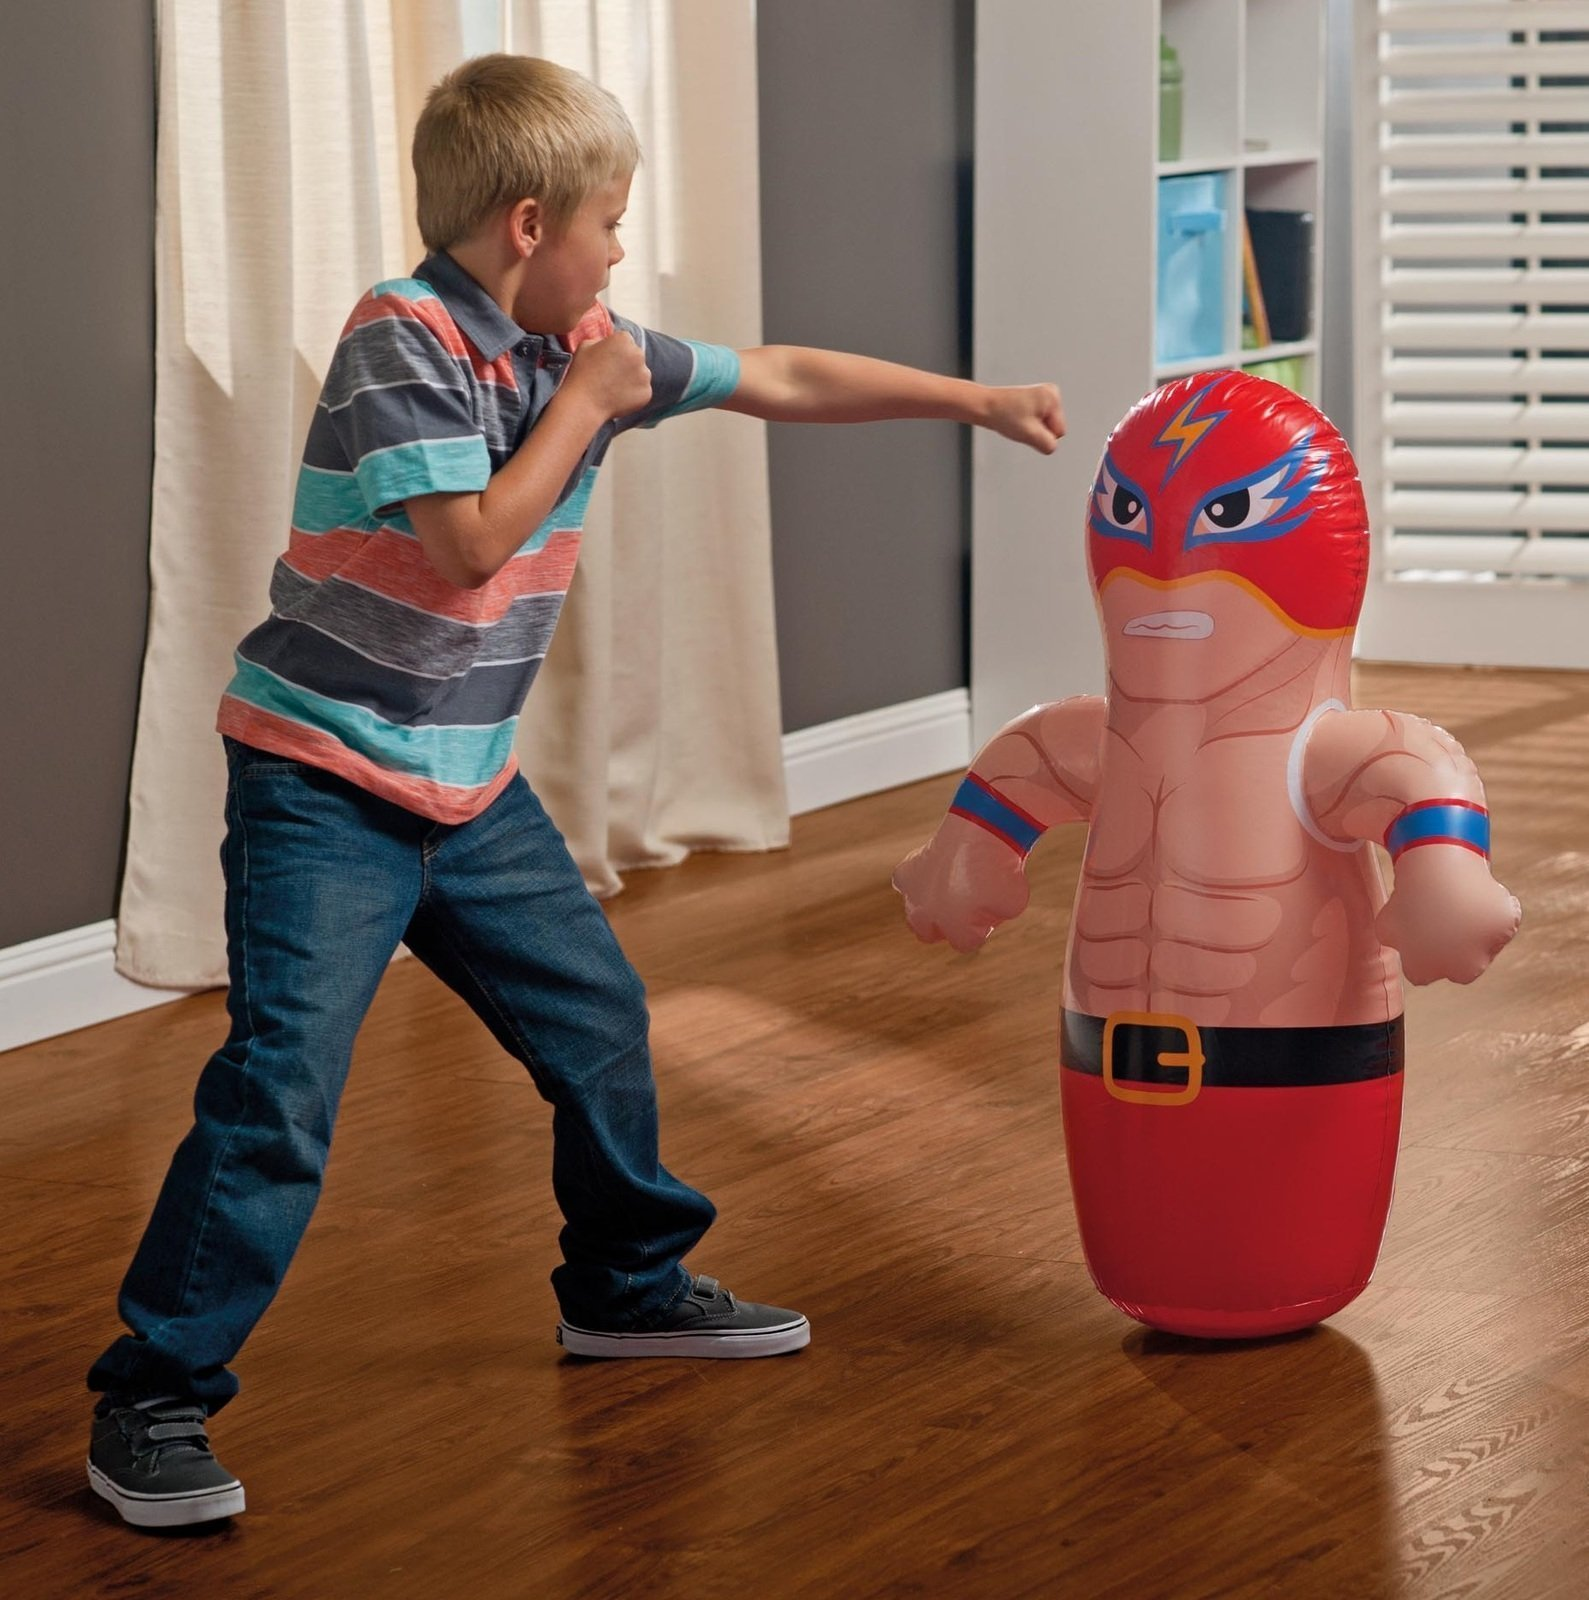 36'' 2 Pack 3-D Bop Bag Masked Wrestlers - MMA Fighter Wrestling Kick Boxing Tackle Buddy Punching Bop Bag Fun Kids Indoor Outdoor Toy by Intex (Image #2)